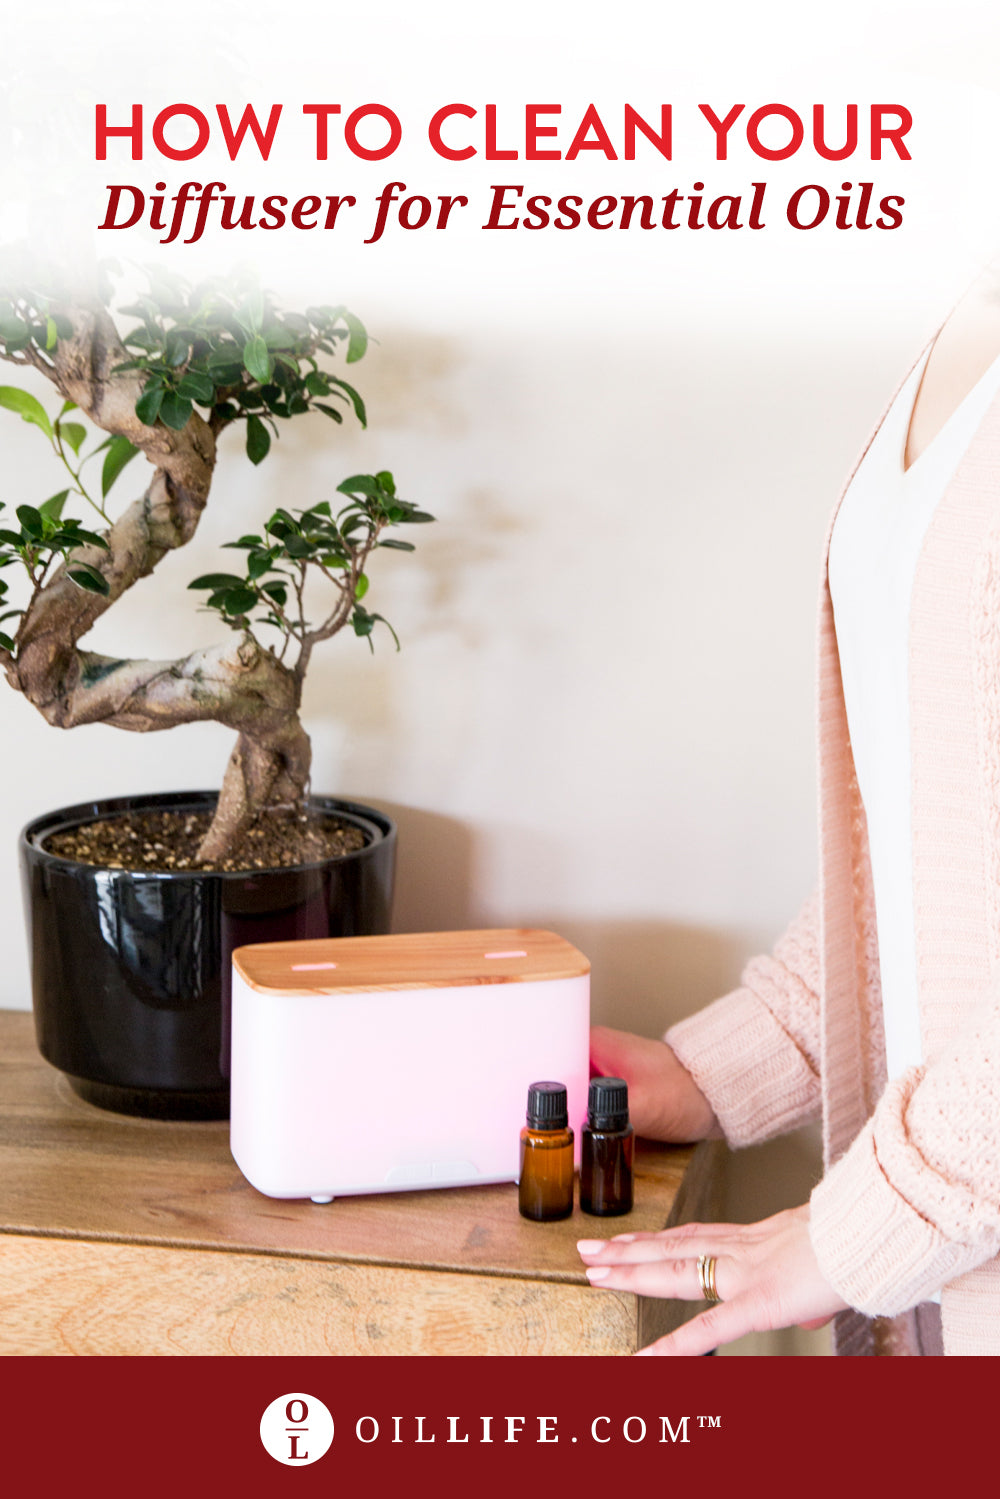 How to Clean Essential Oil Diffuser With Vinegar